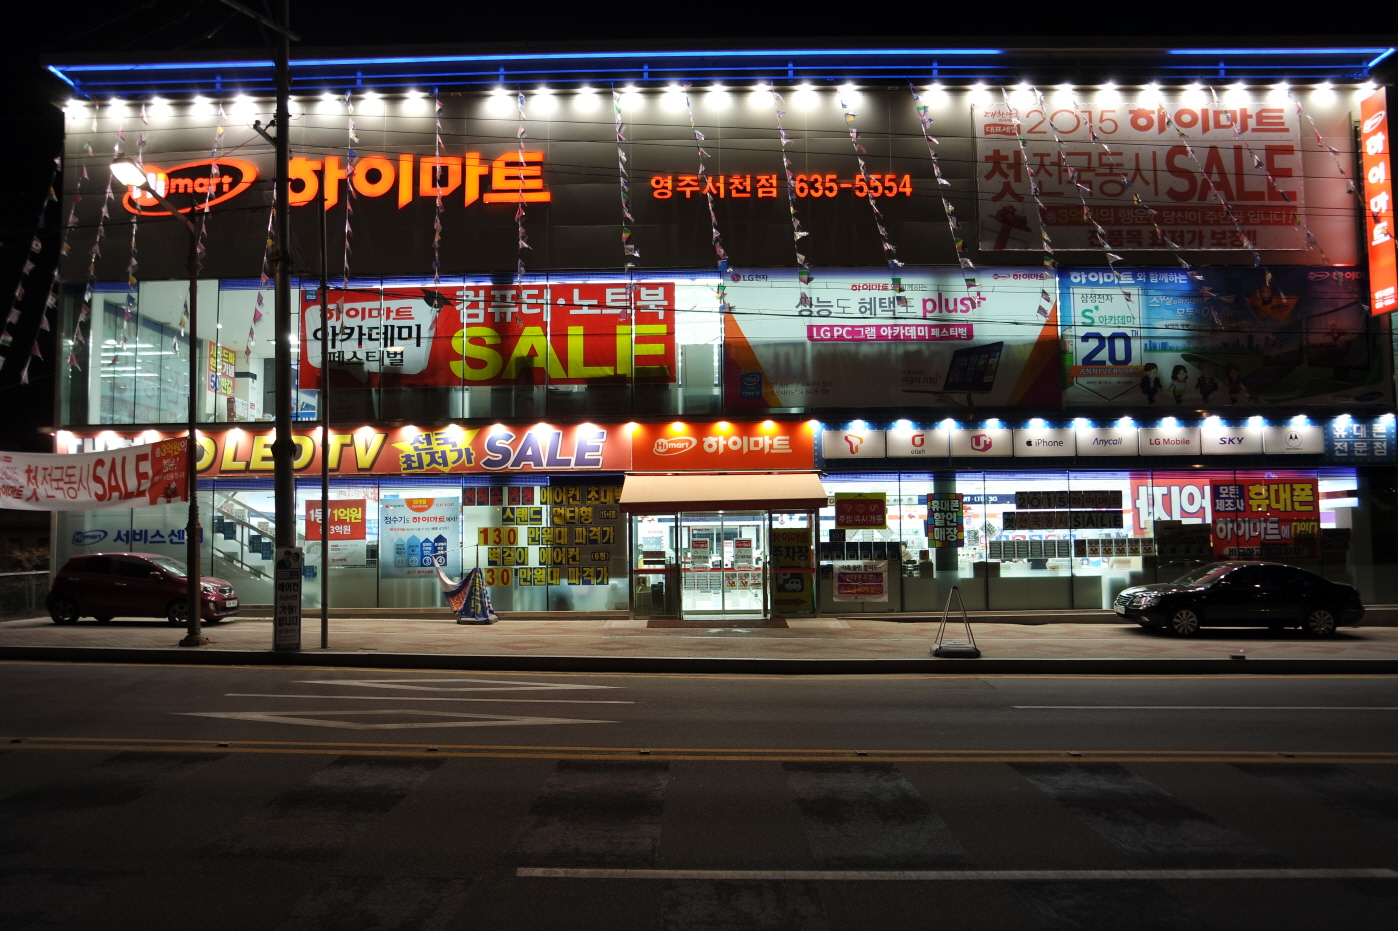 Lotte Hi-mart – Yeongju Seocheon Branch (롯데 하이마트 (영주서천점))